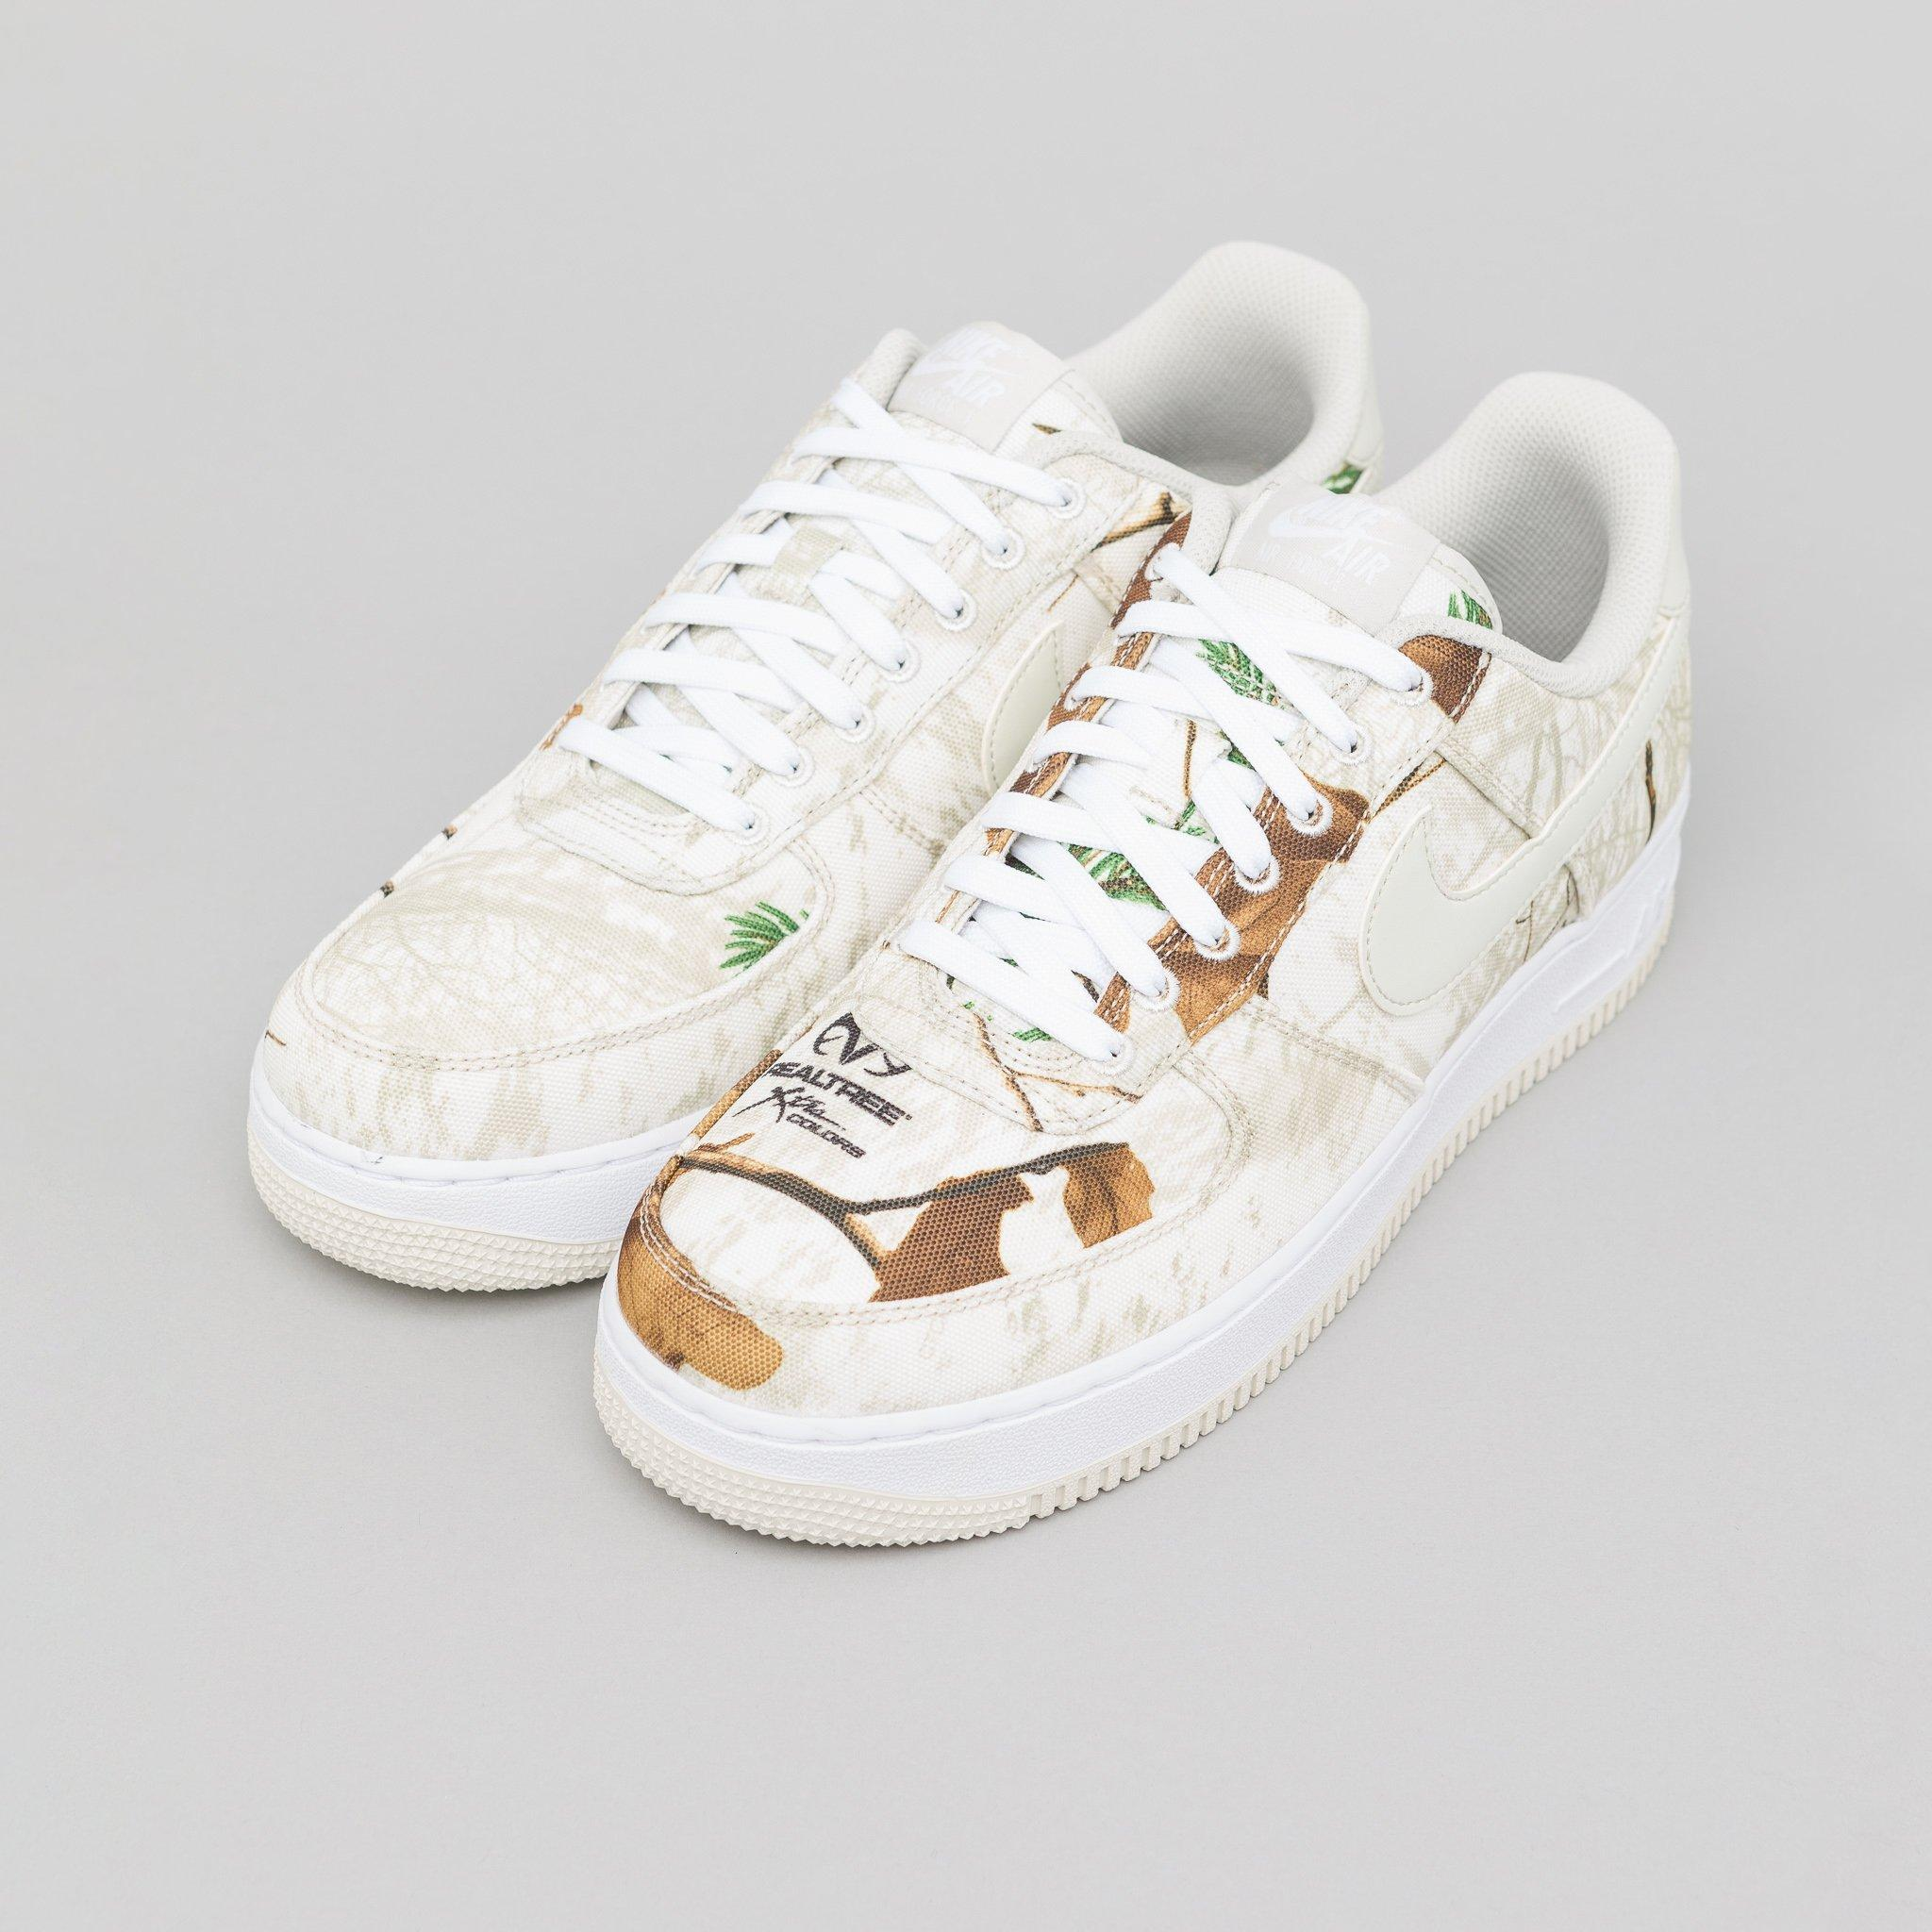 promo code 13397 b9008 Nike Air Force 1 07 Lv8 3 In White light Bone in White for Men - Lyst